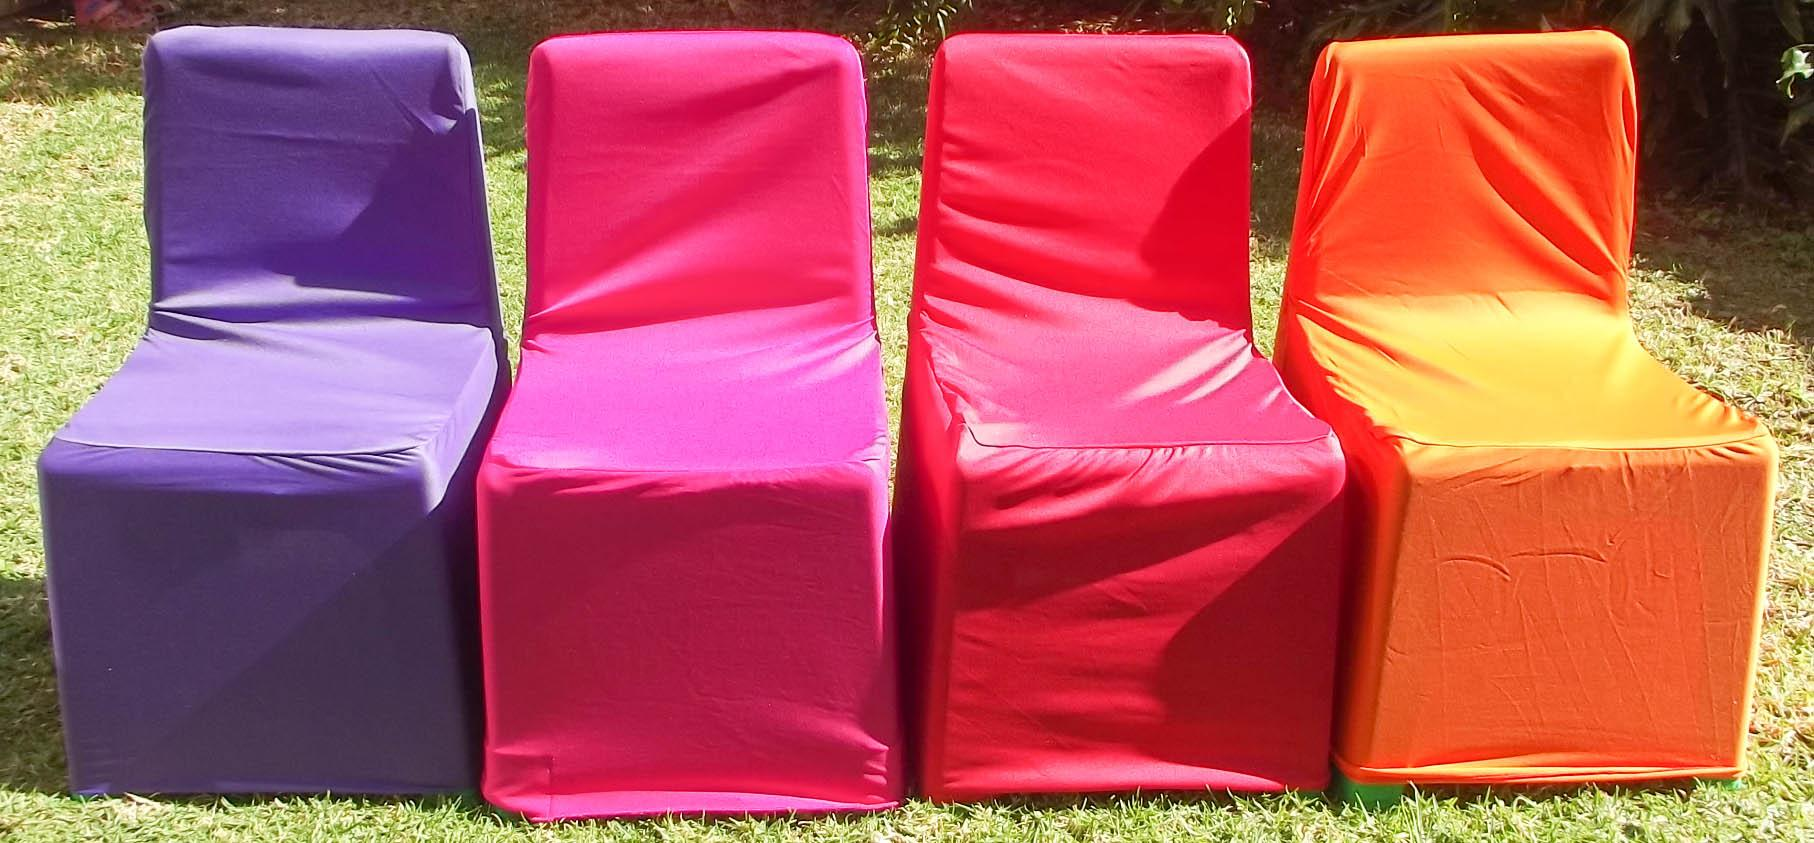 where to buy chair covers in jhb unusual sashes kids 50 pack r1400 incl postage